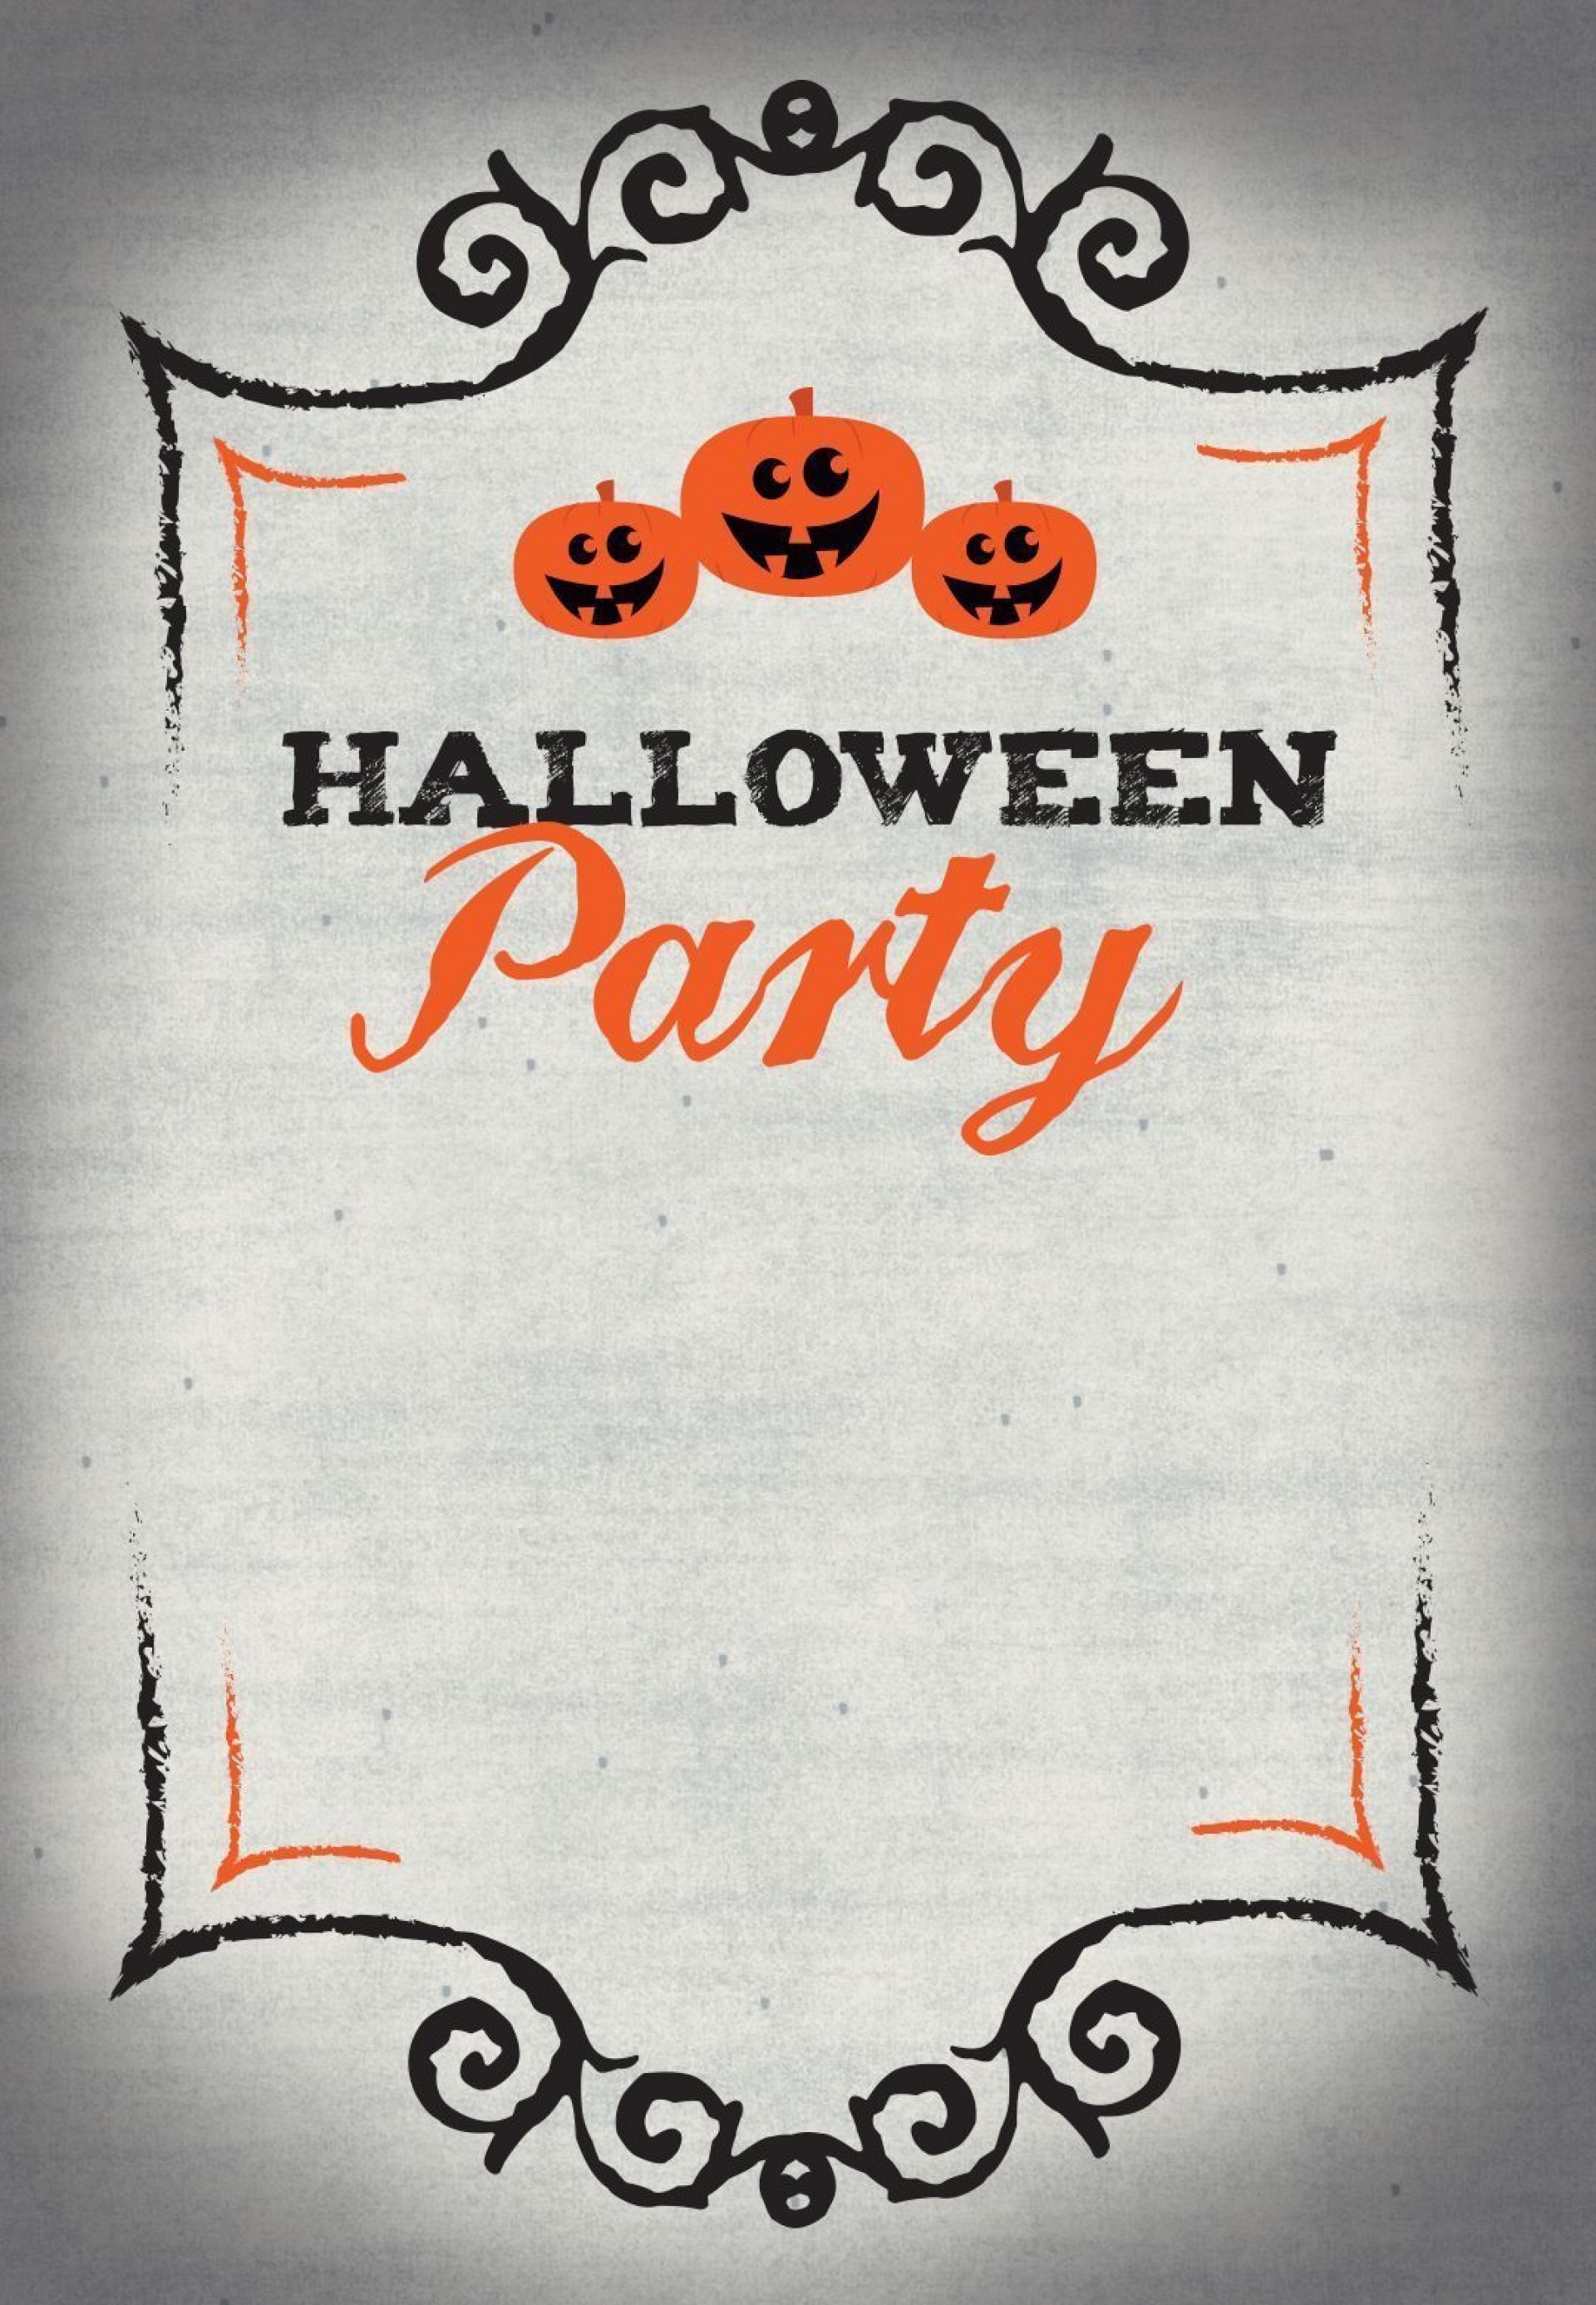 000 Remarkable Halloween Party Invite Template Sample  Spooky Invitation Free Printable Birthday Download1920